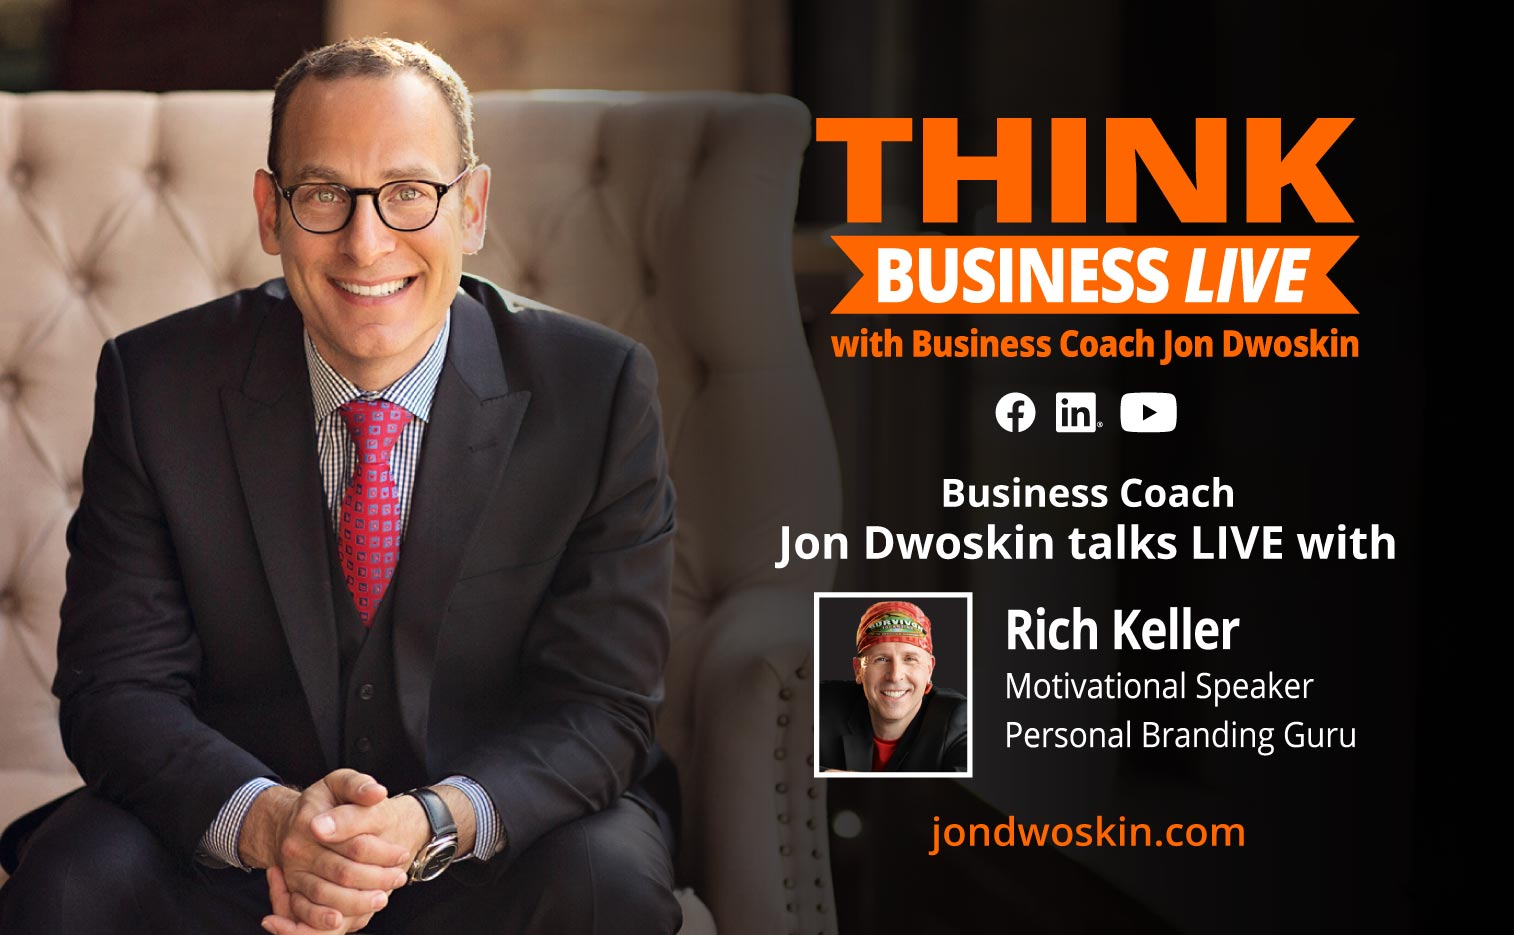 THINK Business LIVE: Jon Dwoskin Talks with Rich Keller